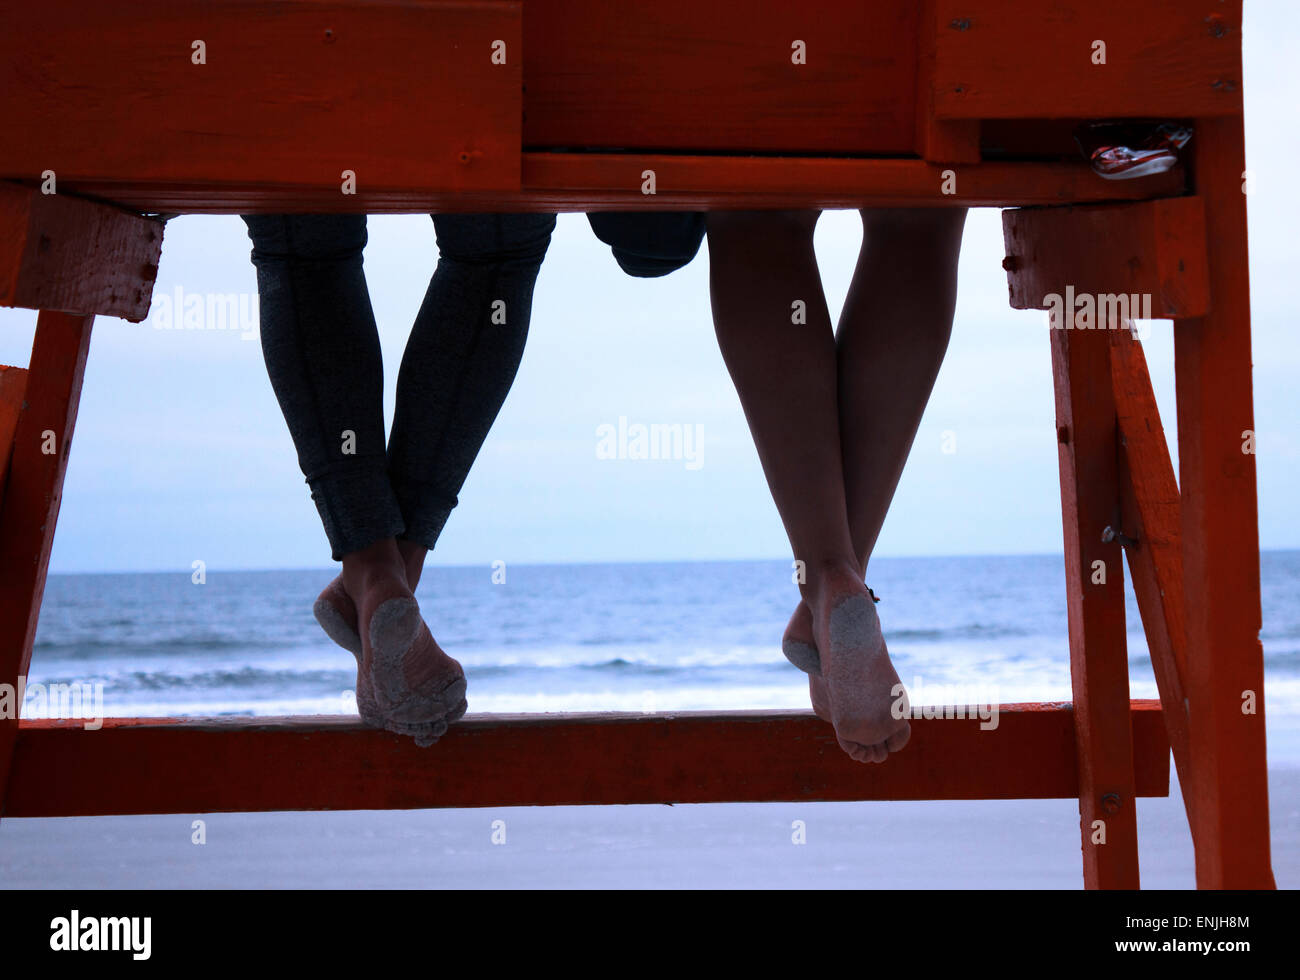 Two girls sitting on a life saver watcher seat,  at Jacksonville beach - Stock Image